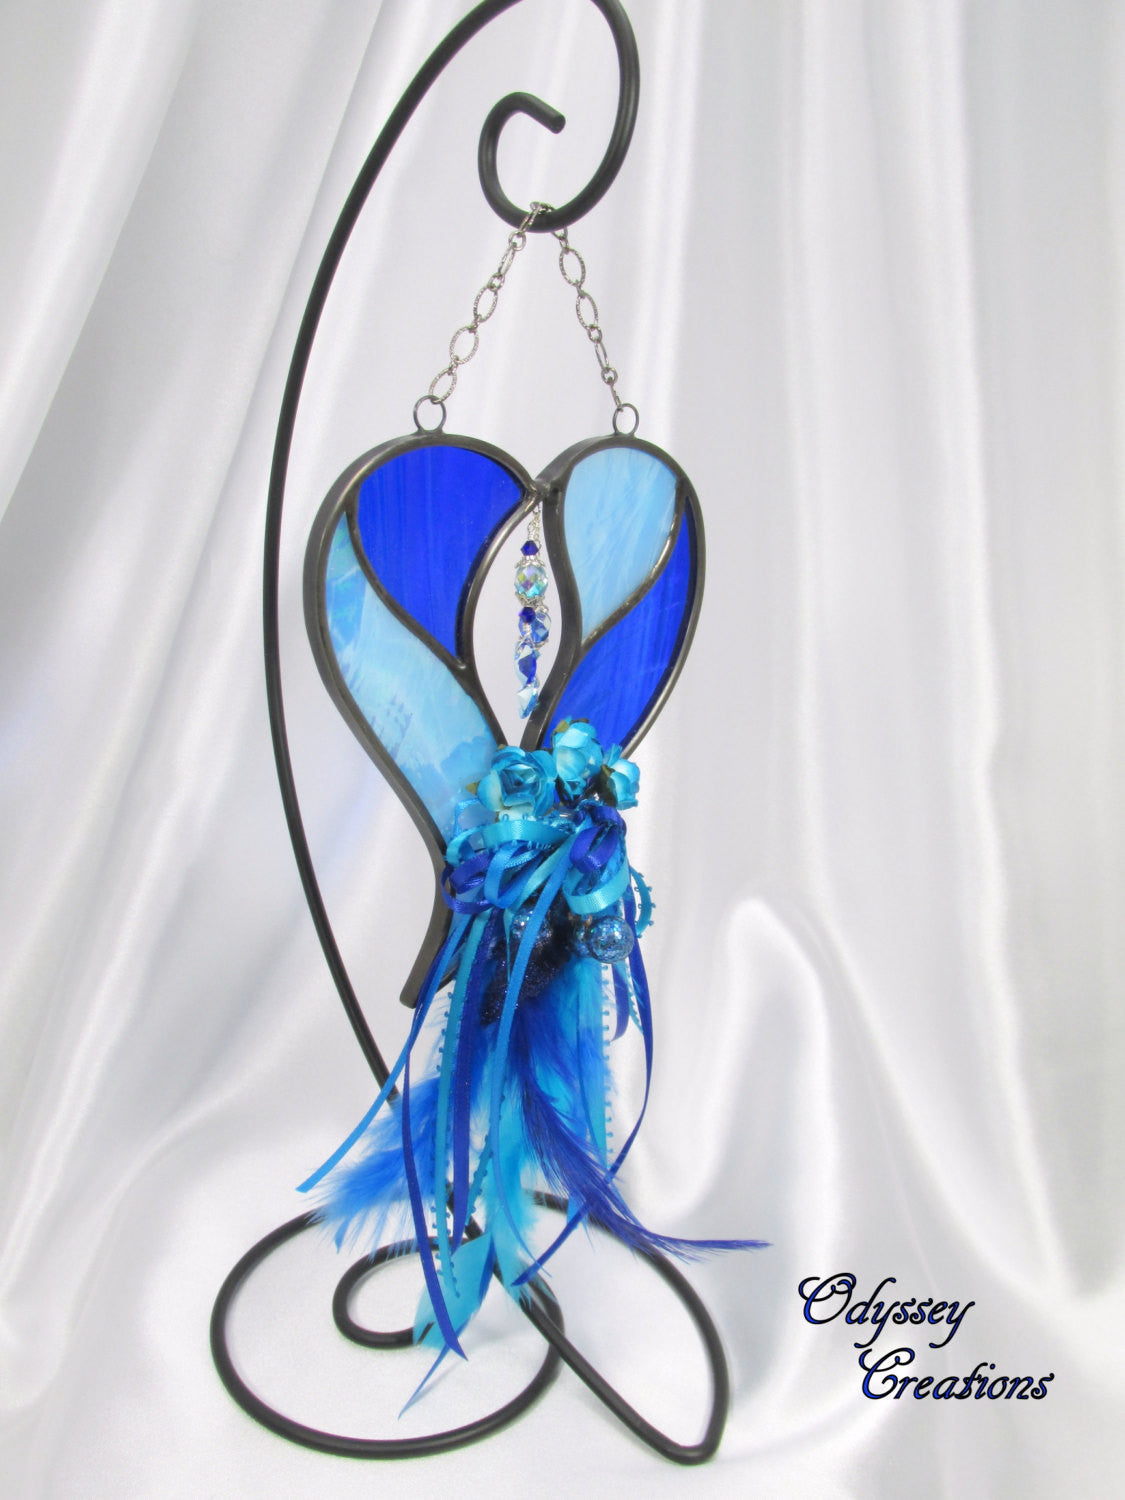 Blue and Turquoise Decorated Two Hearts as One Stained Glass Suncatcher - Odyssey Creations